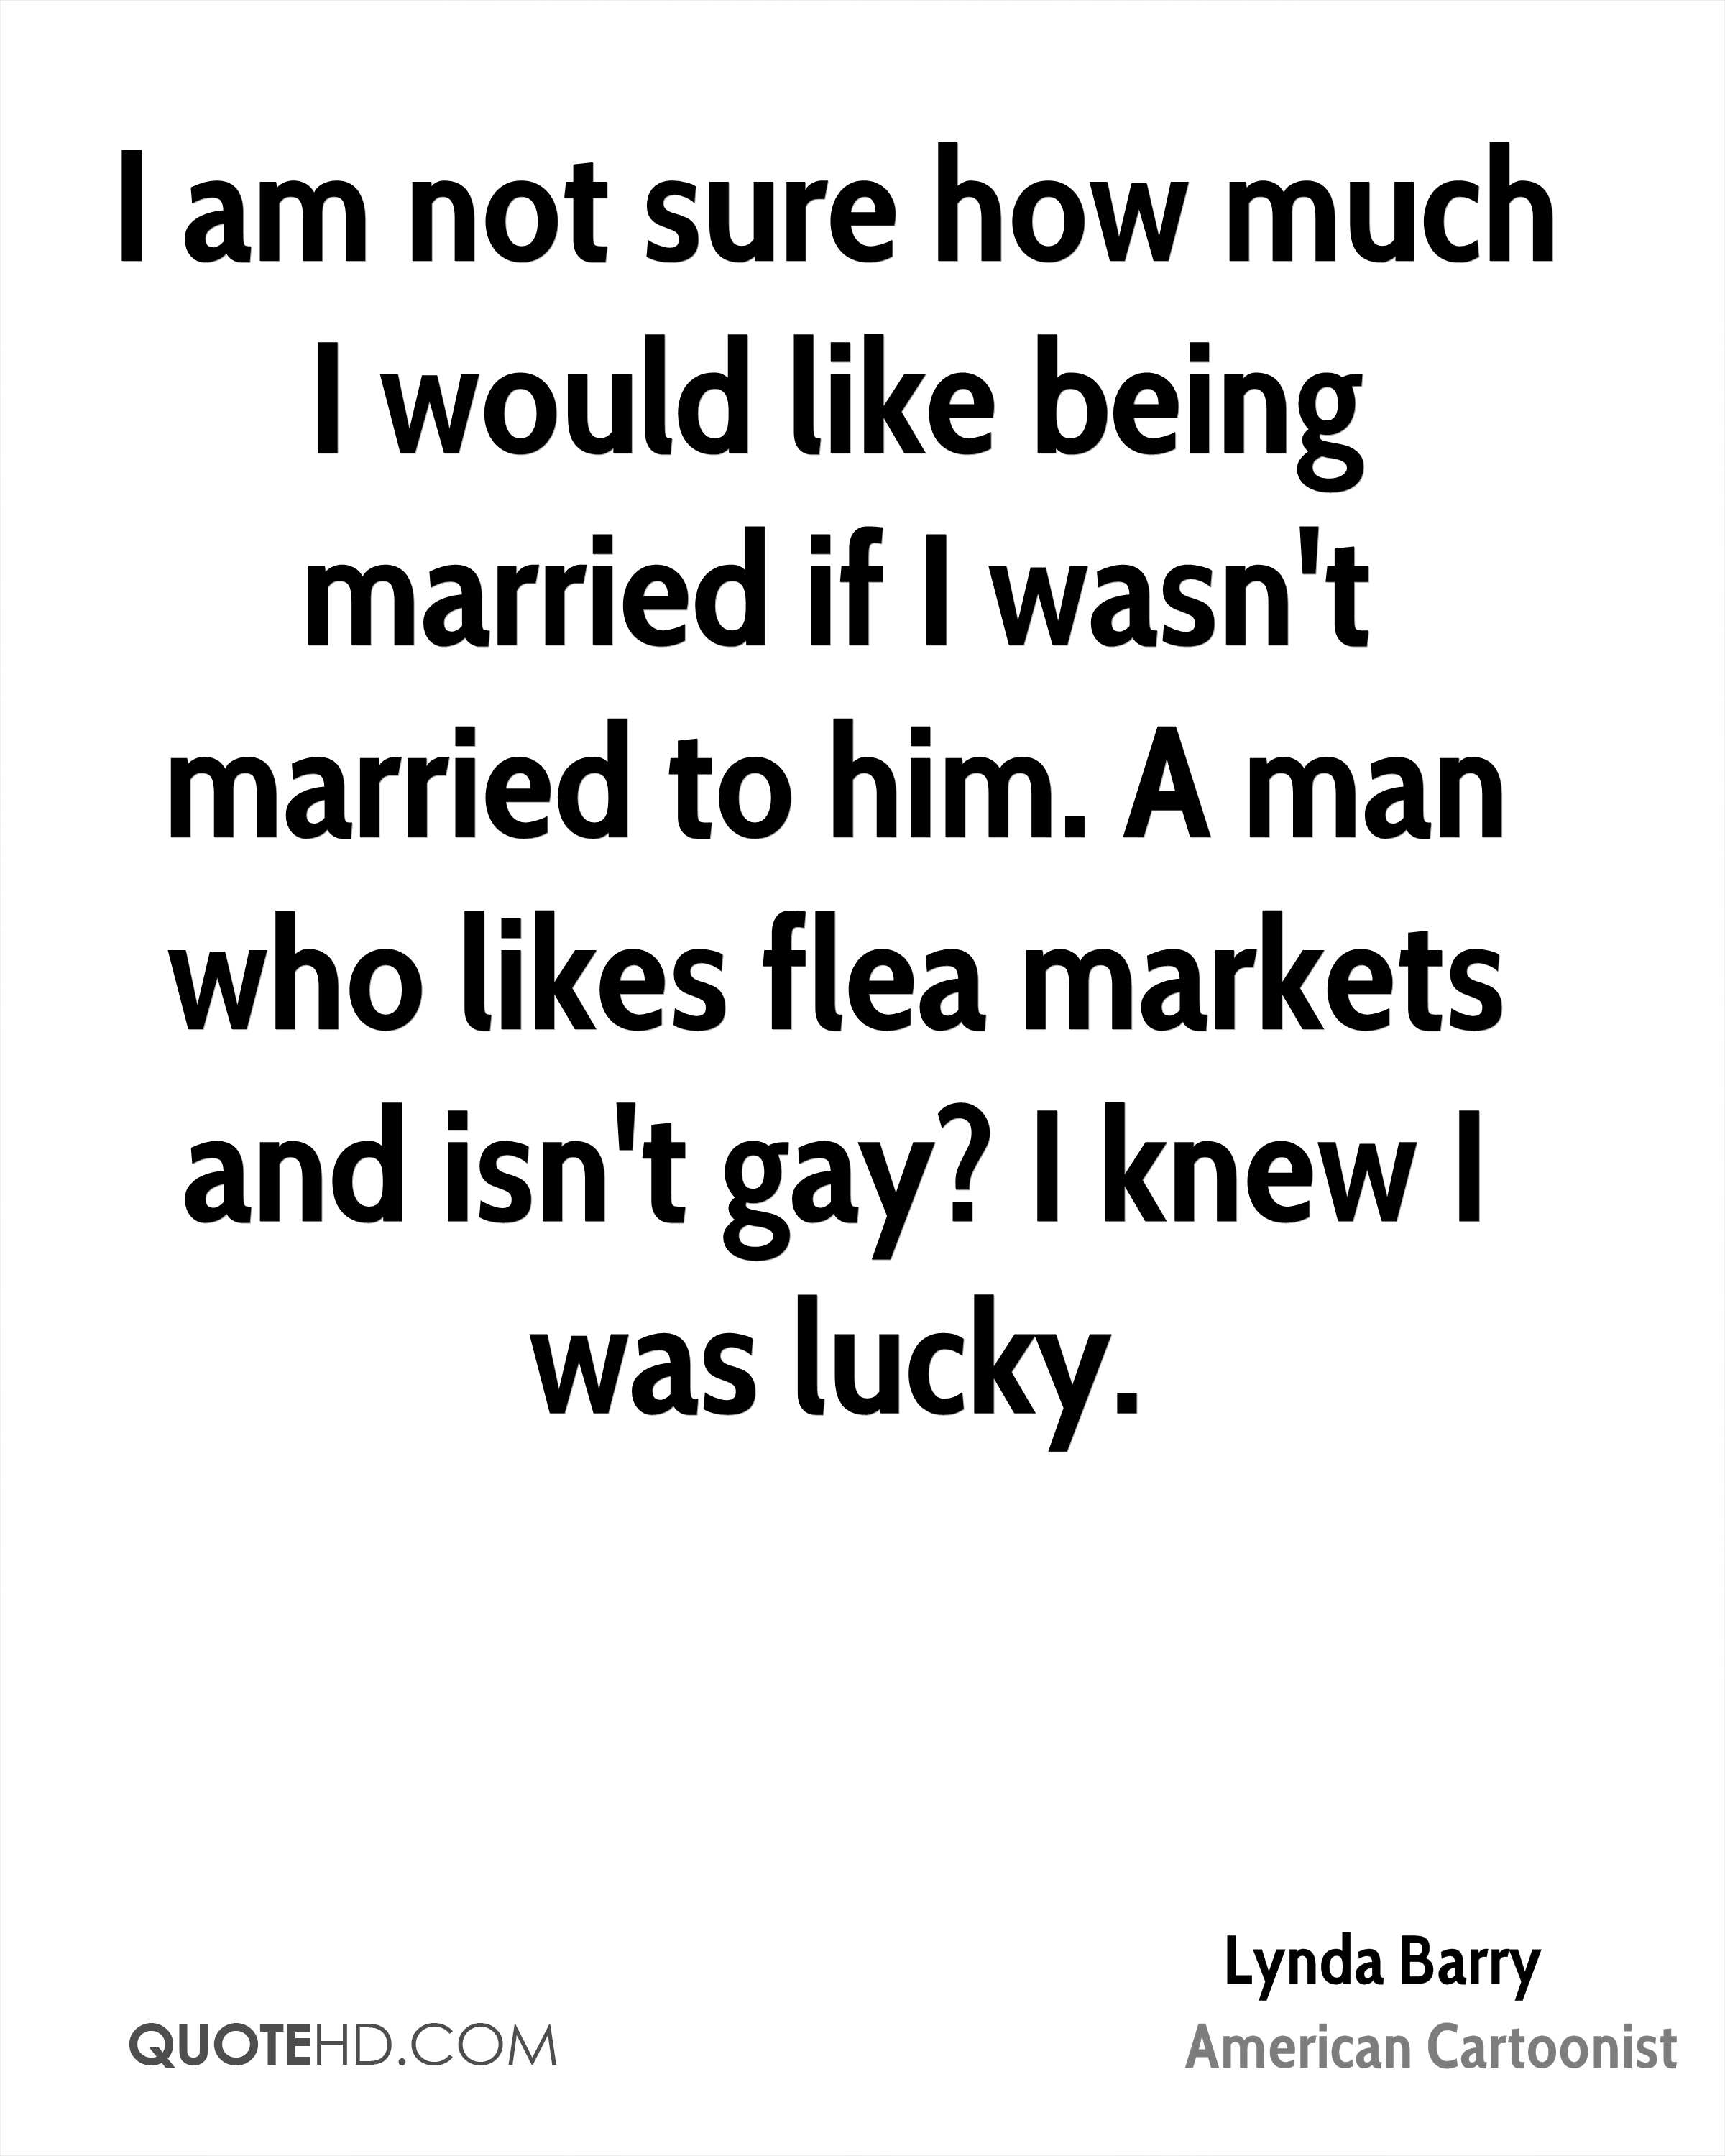 I am not sure how much I would like being married if I wasn't married to him. A man who likes flea markets and isn't gay? I knew I was lucky.